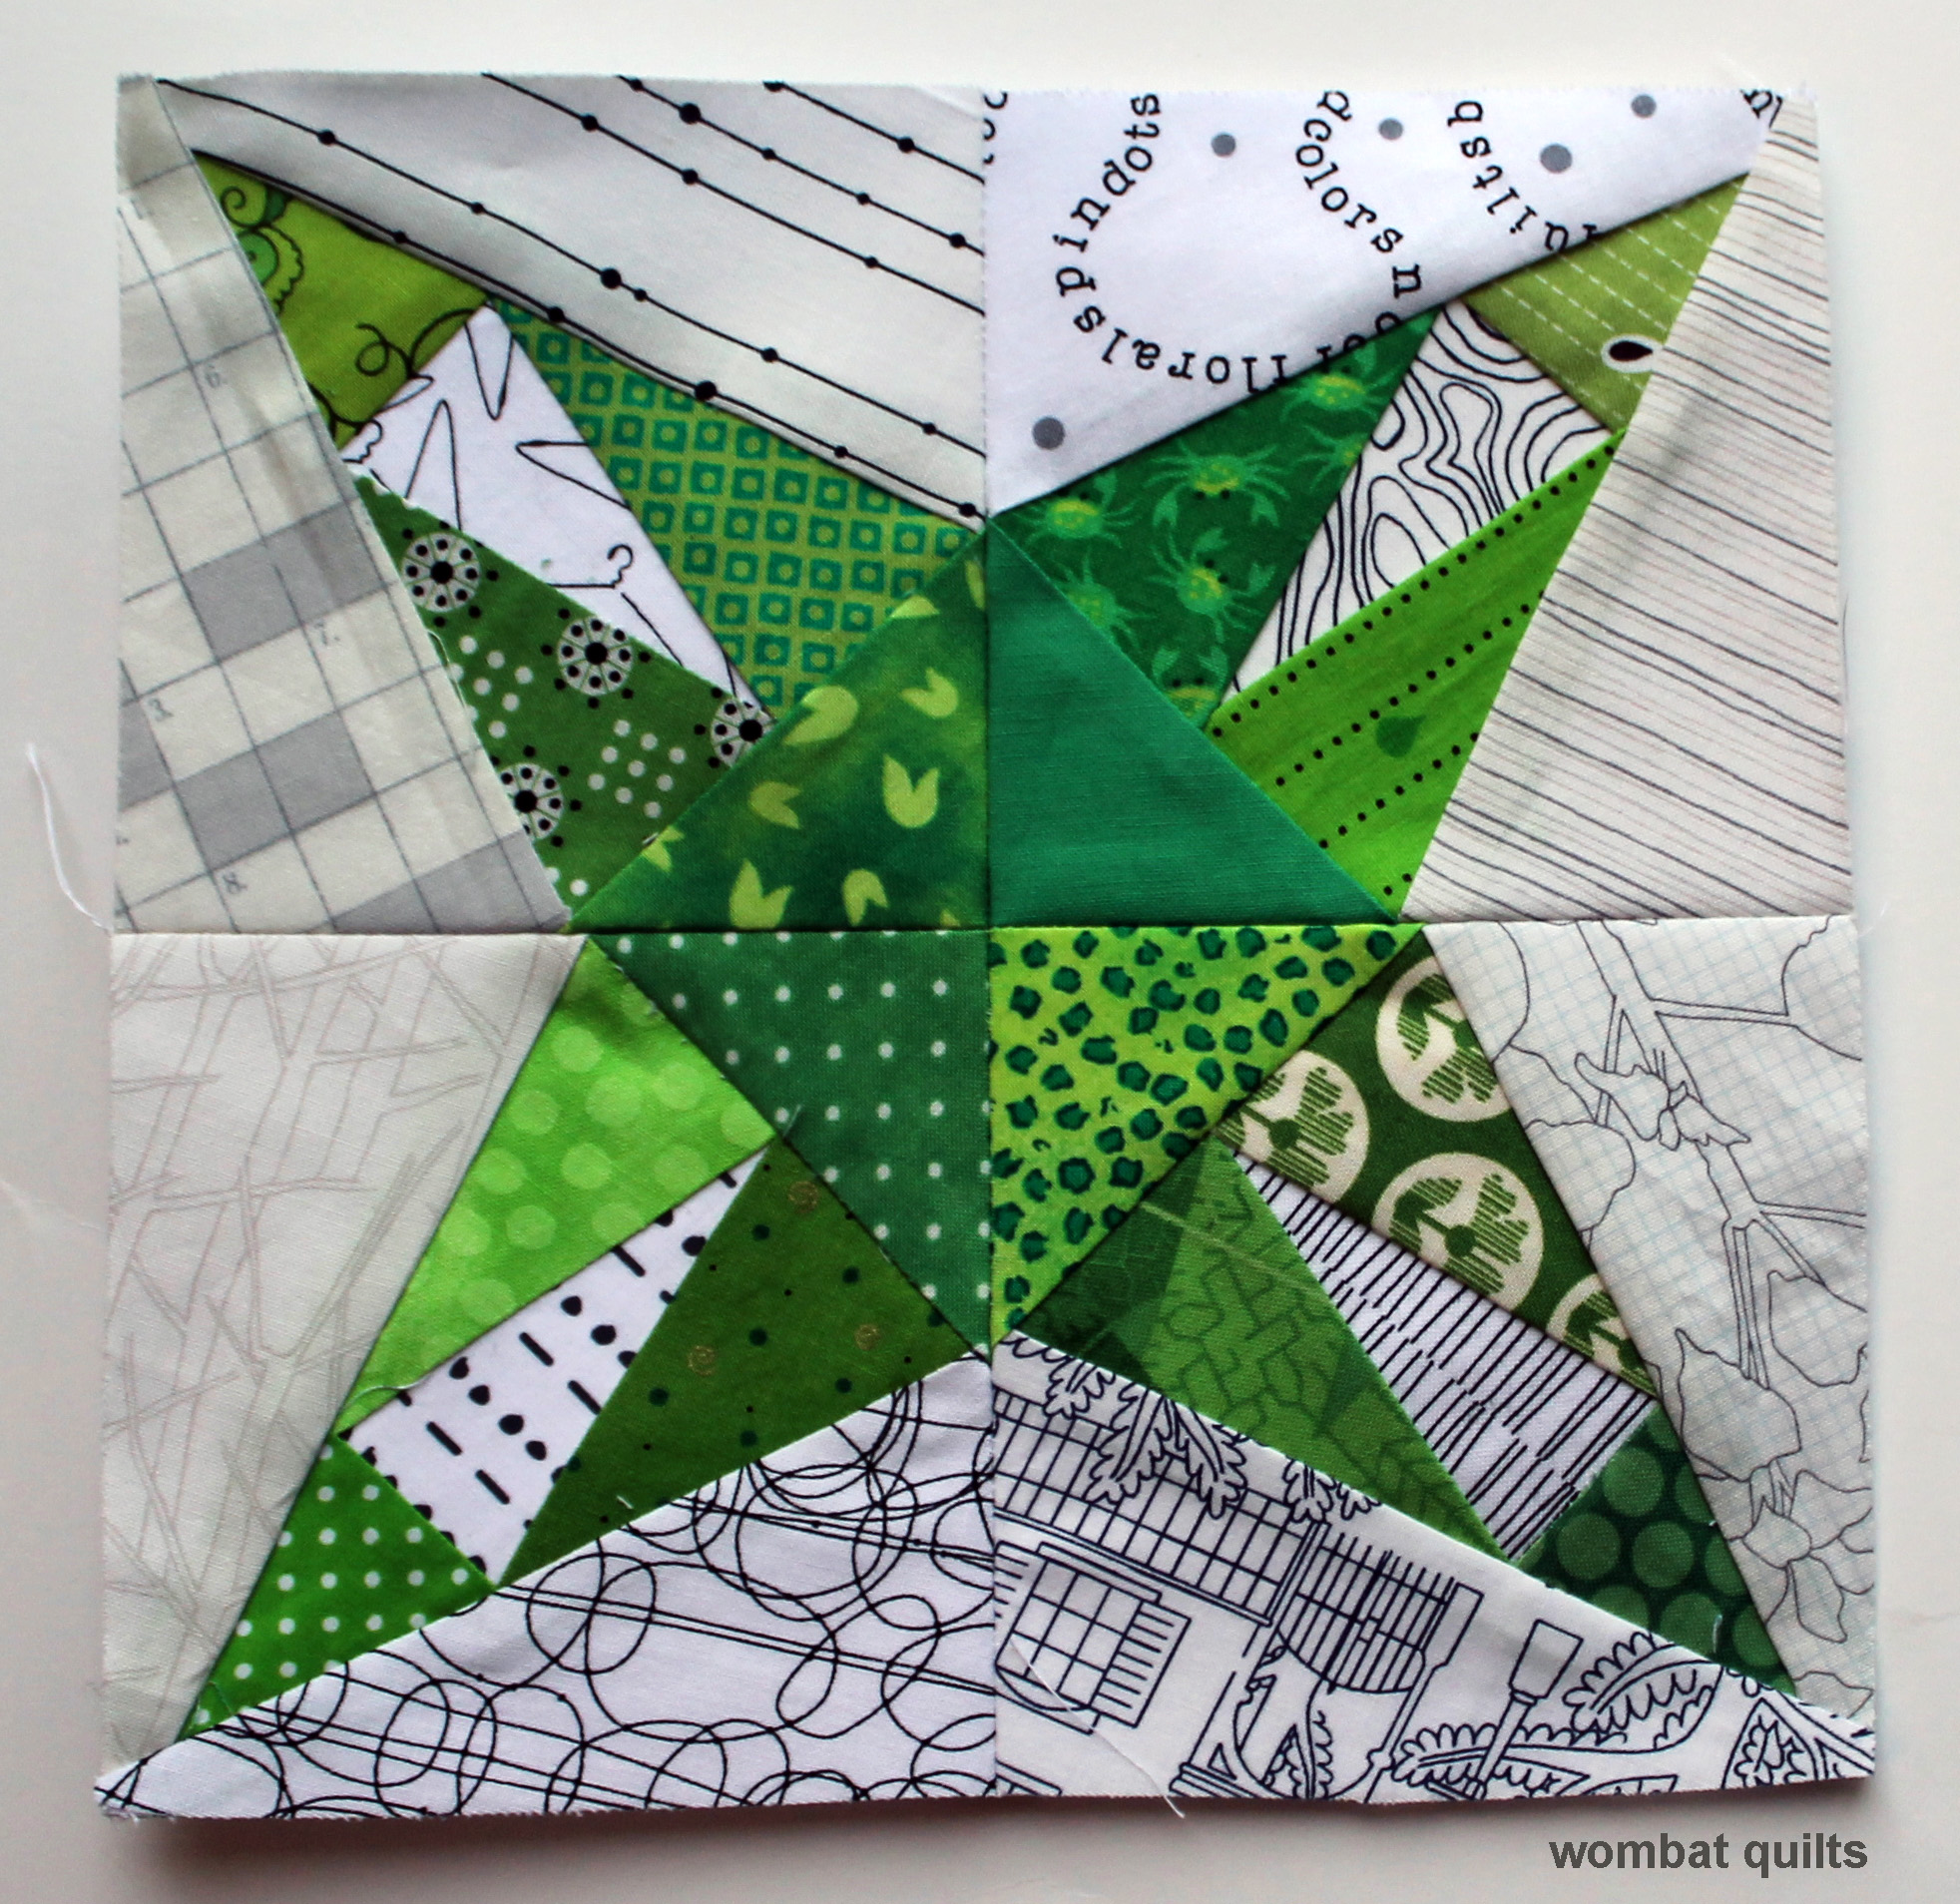 8 Inch Quilt Blocks Free Patterns : 8 inch star block WOMBAT QUILTS